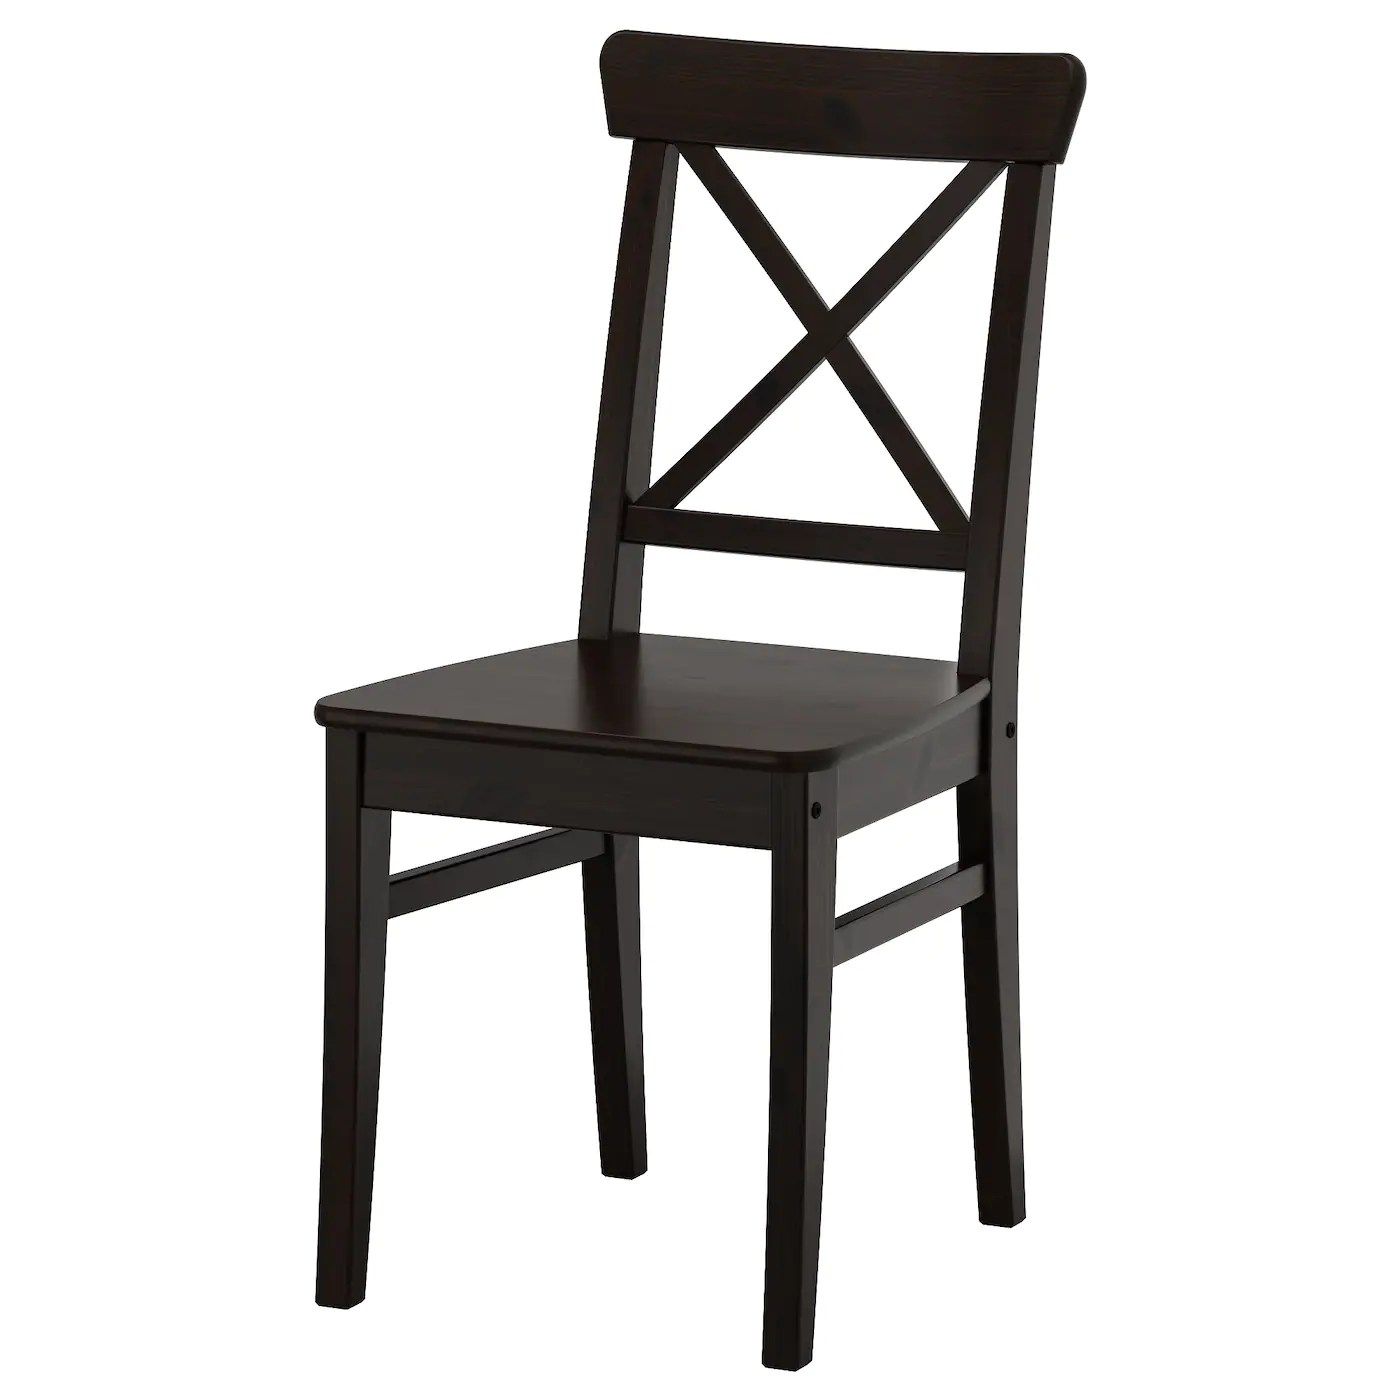 Ikea Klapstoel Ingolf Chair Brown Black Ikea